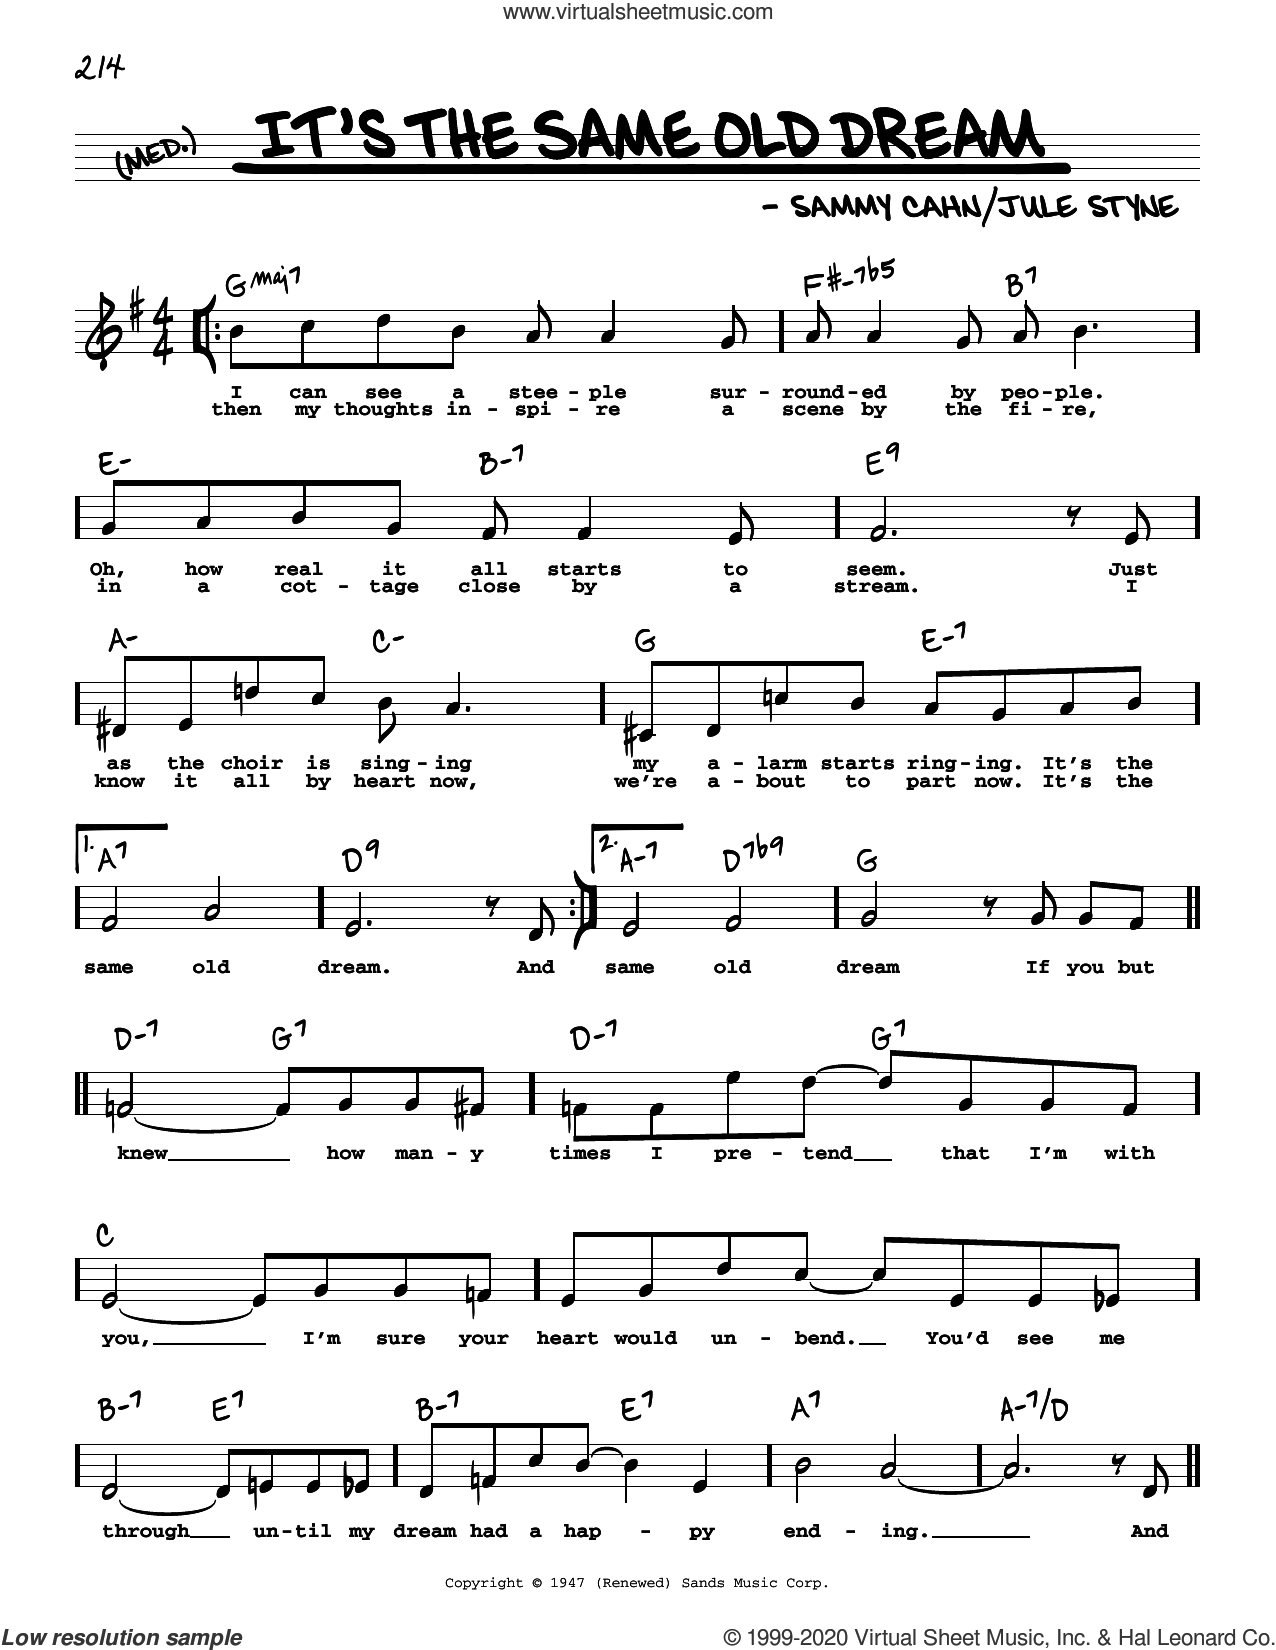 It's The Same Old Dream (High Voice) sheet music for voice and other instruments (high voice) by Sammy Cahn and Jule Styne, intermediate skill level